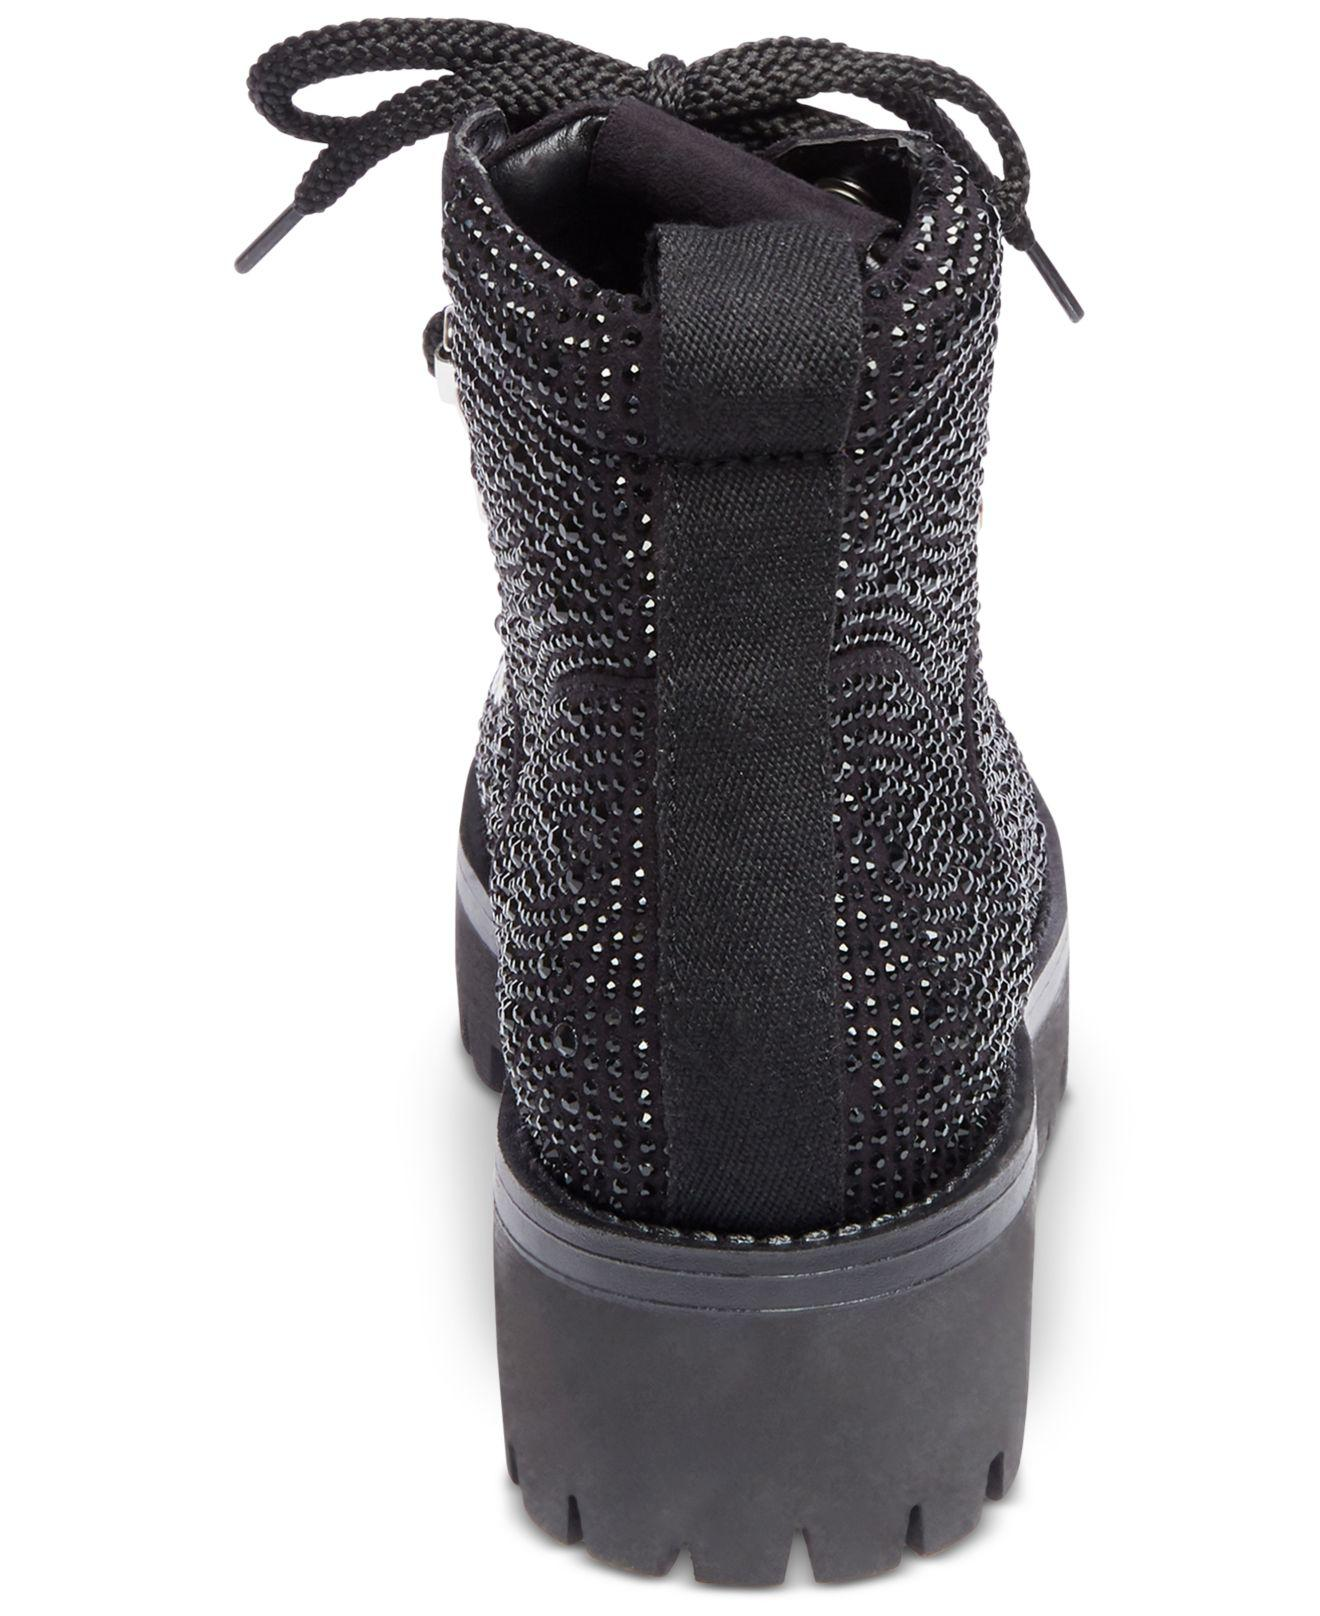 2159c4157b7 Lyst - Steve Madden Bam Hiker Booties in Black